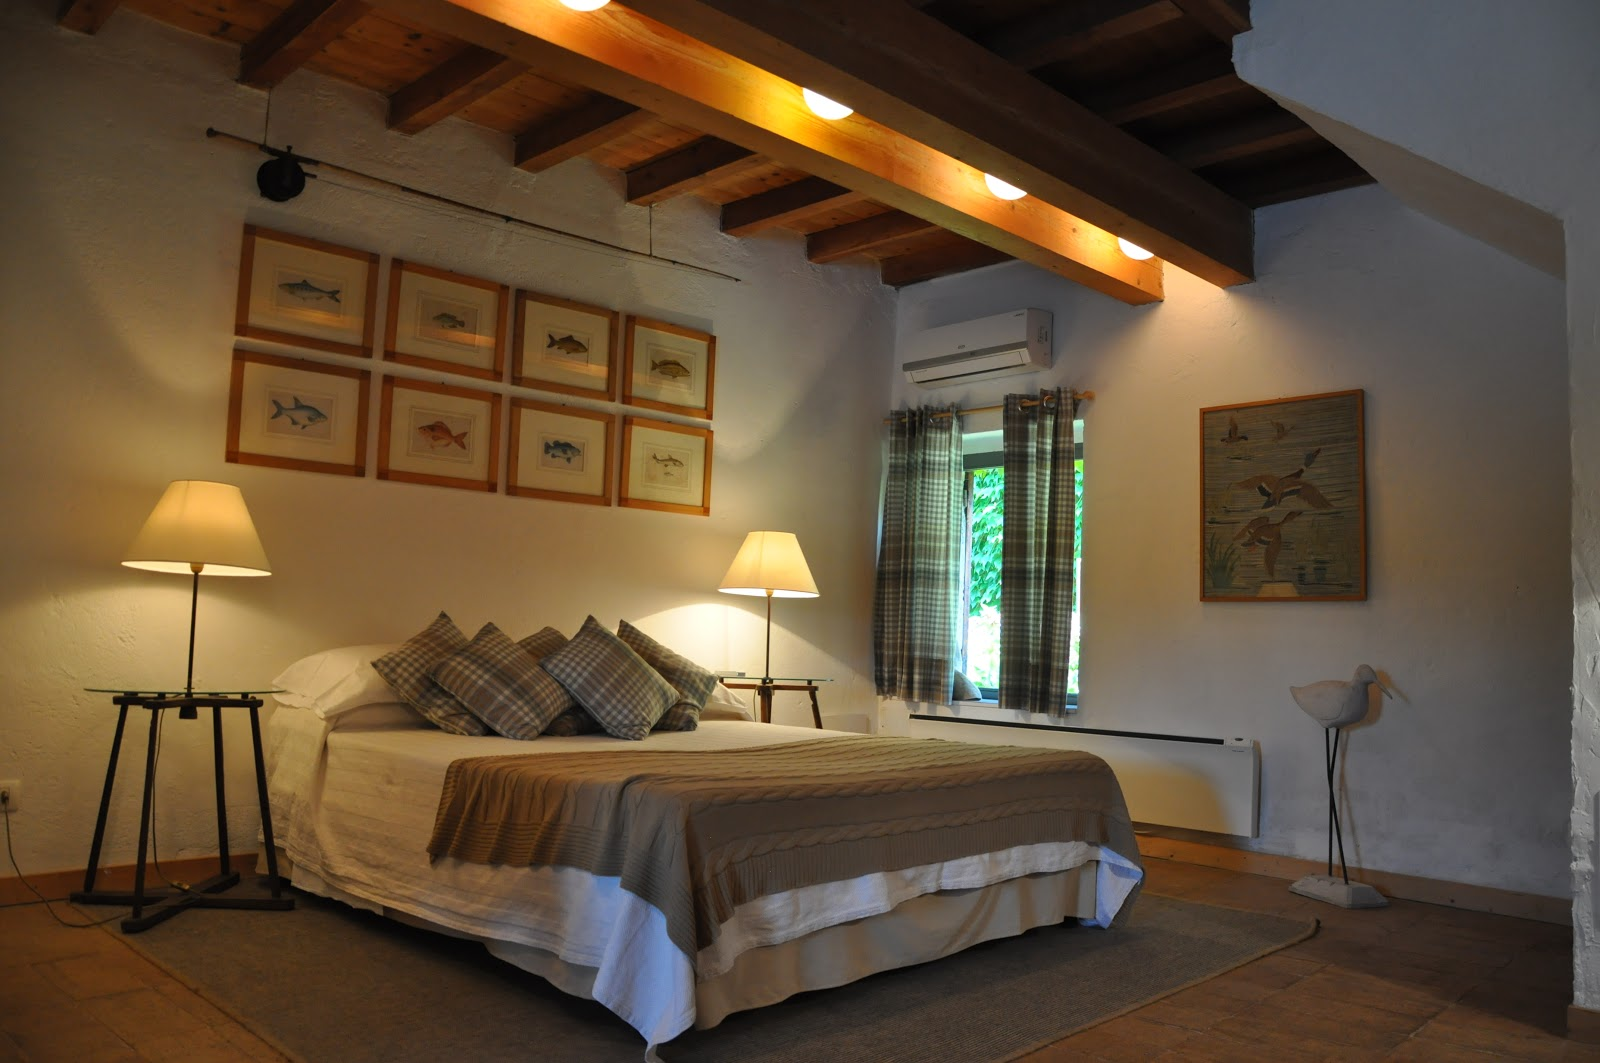 One of the charming rooms at La Finestra Sul Fiume. Photo: Courtesy of La Finestra Sul Fiume.